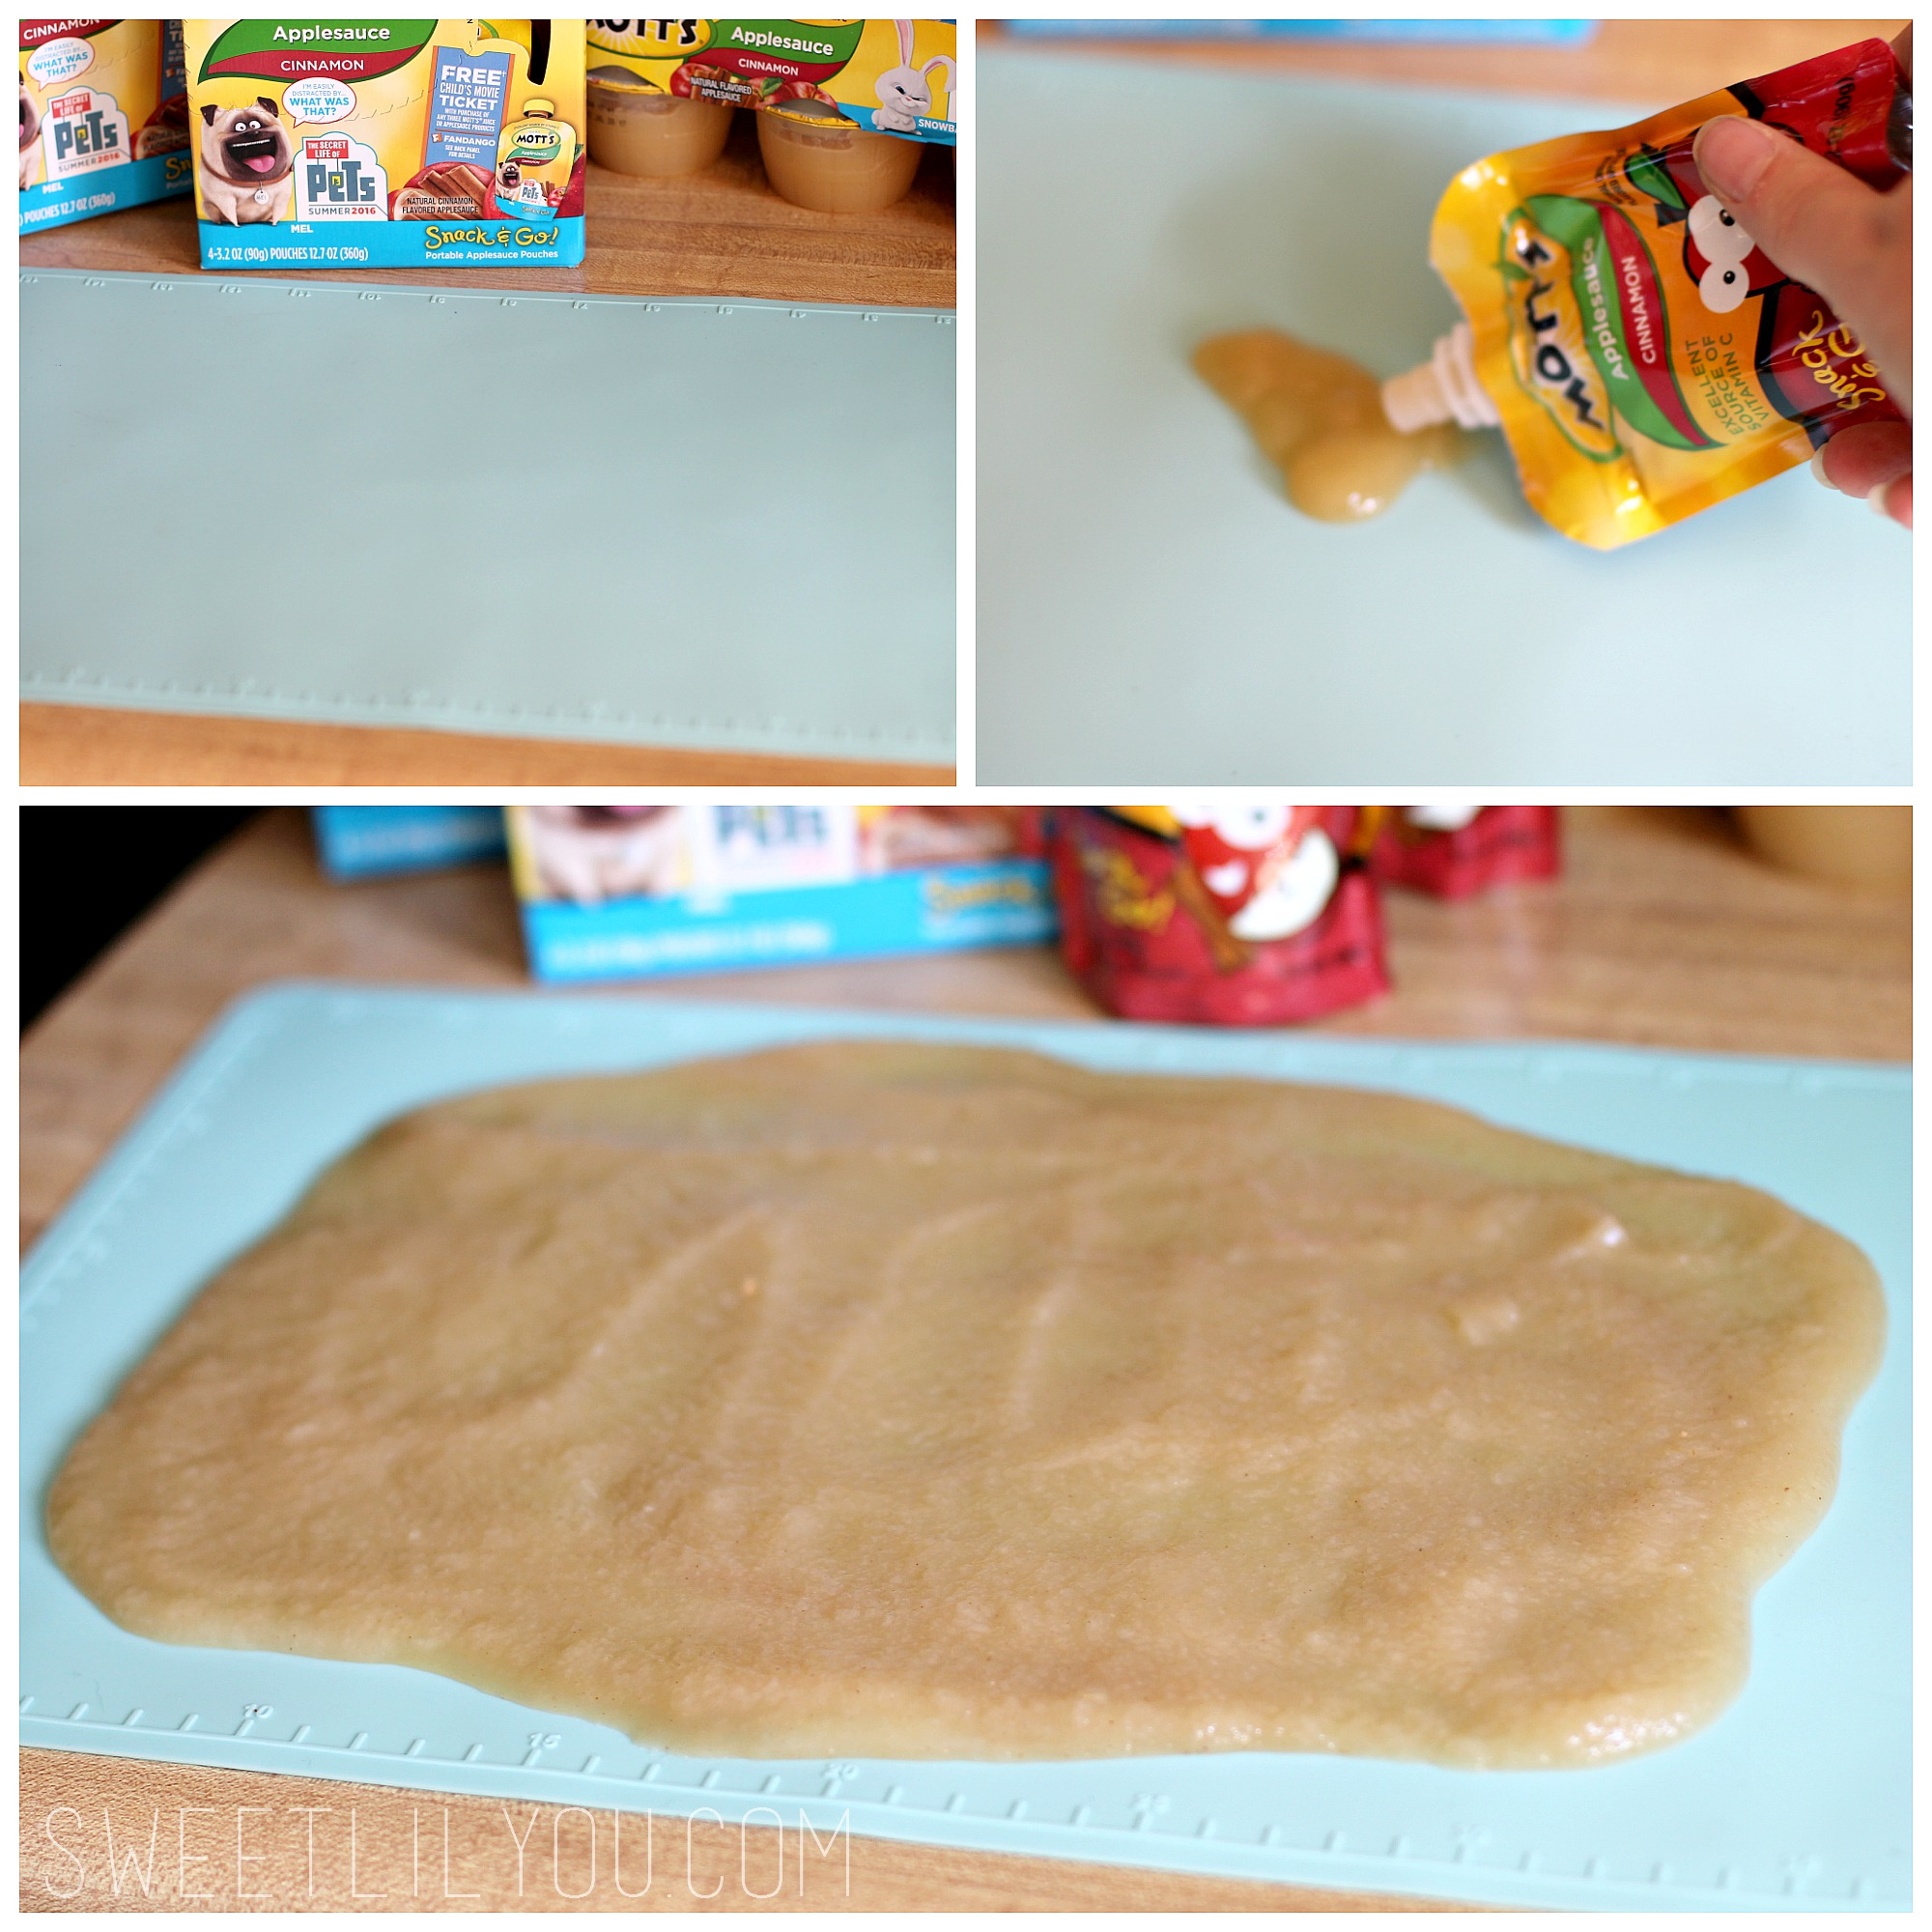 Applesauce Fruit Leather at home